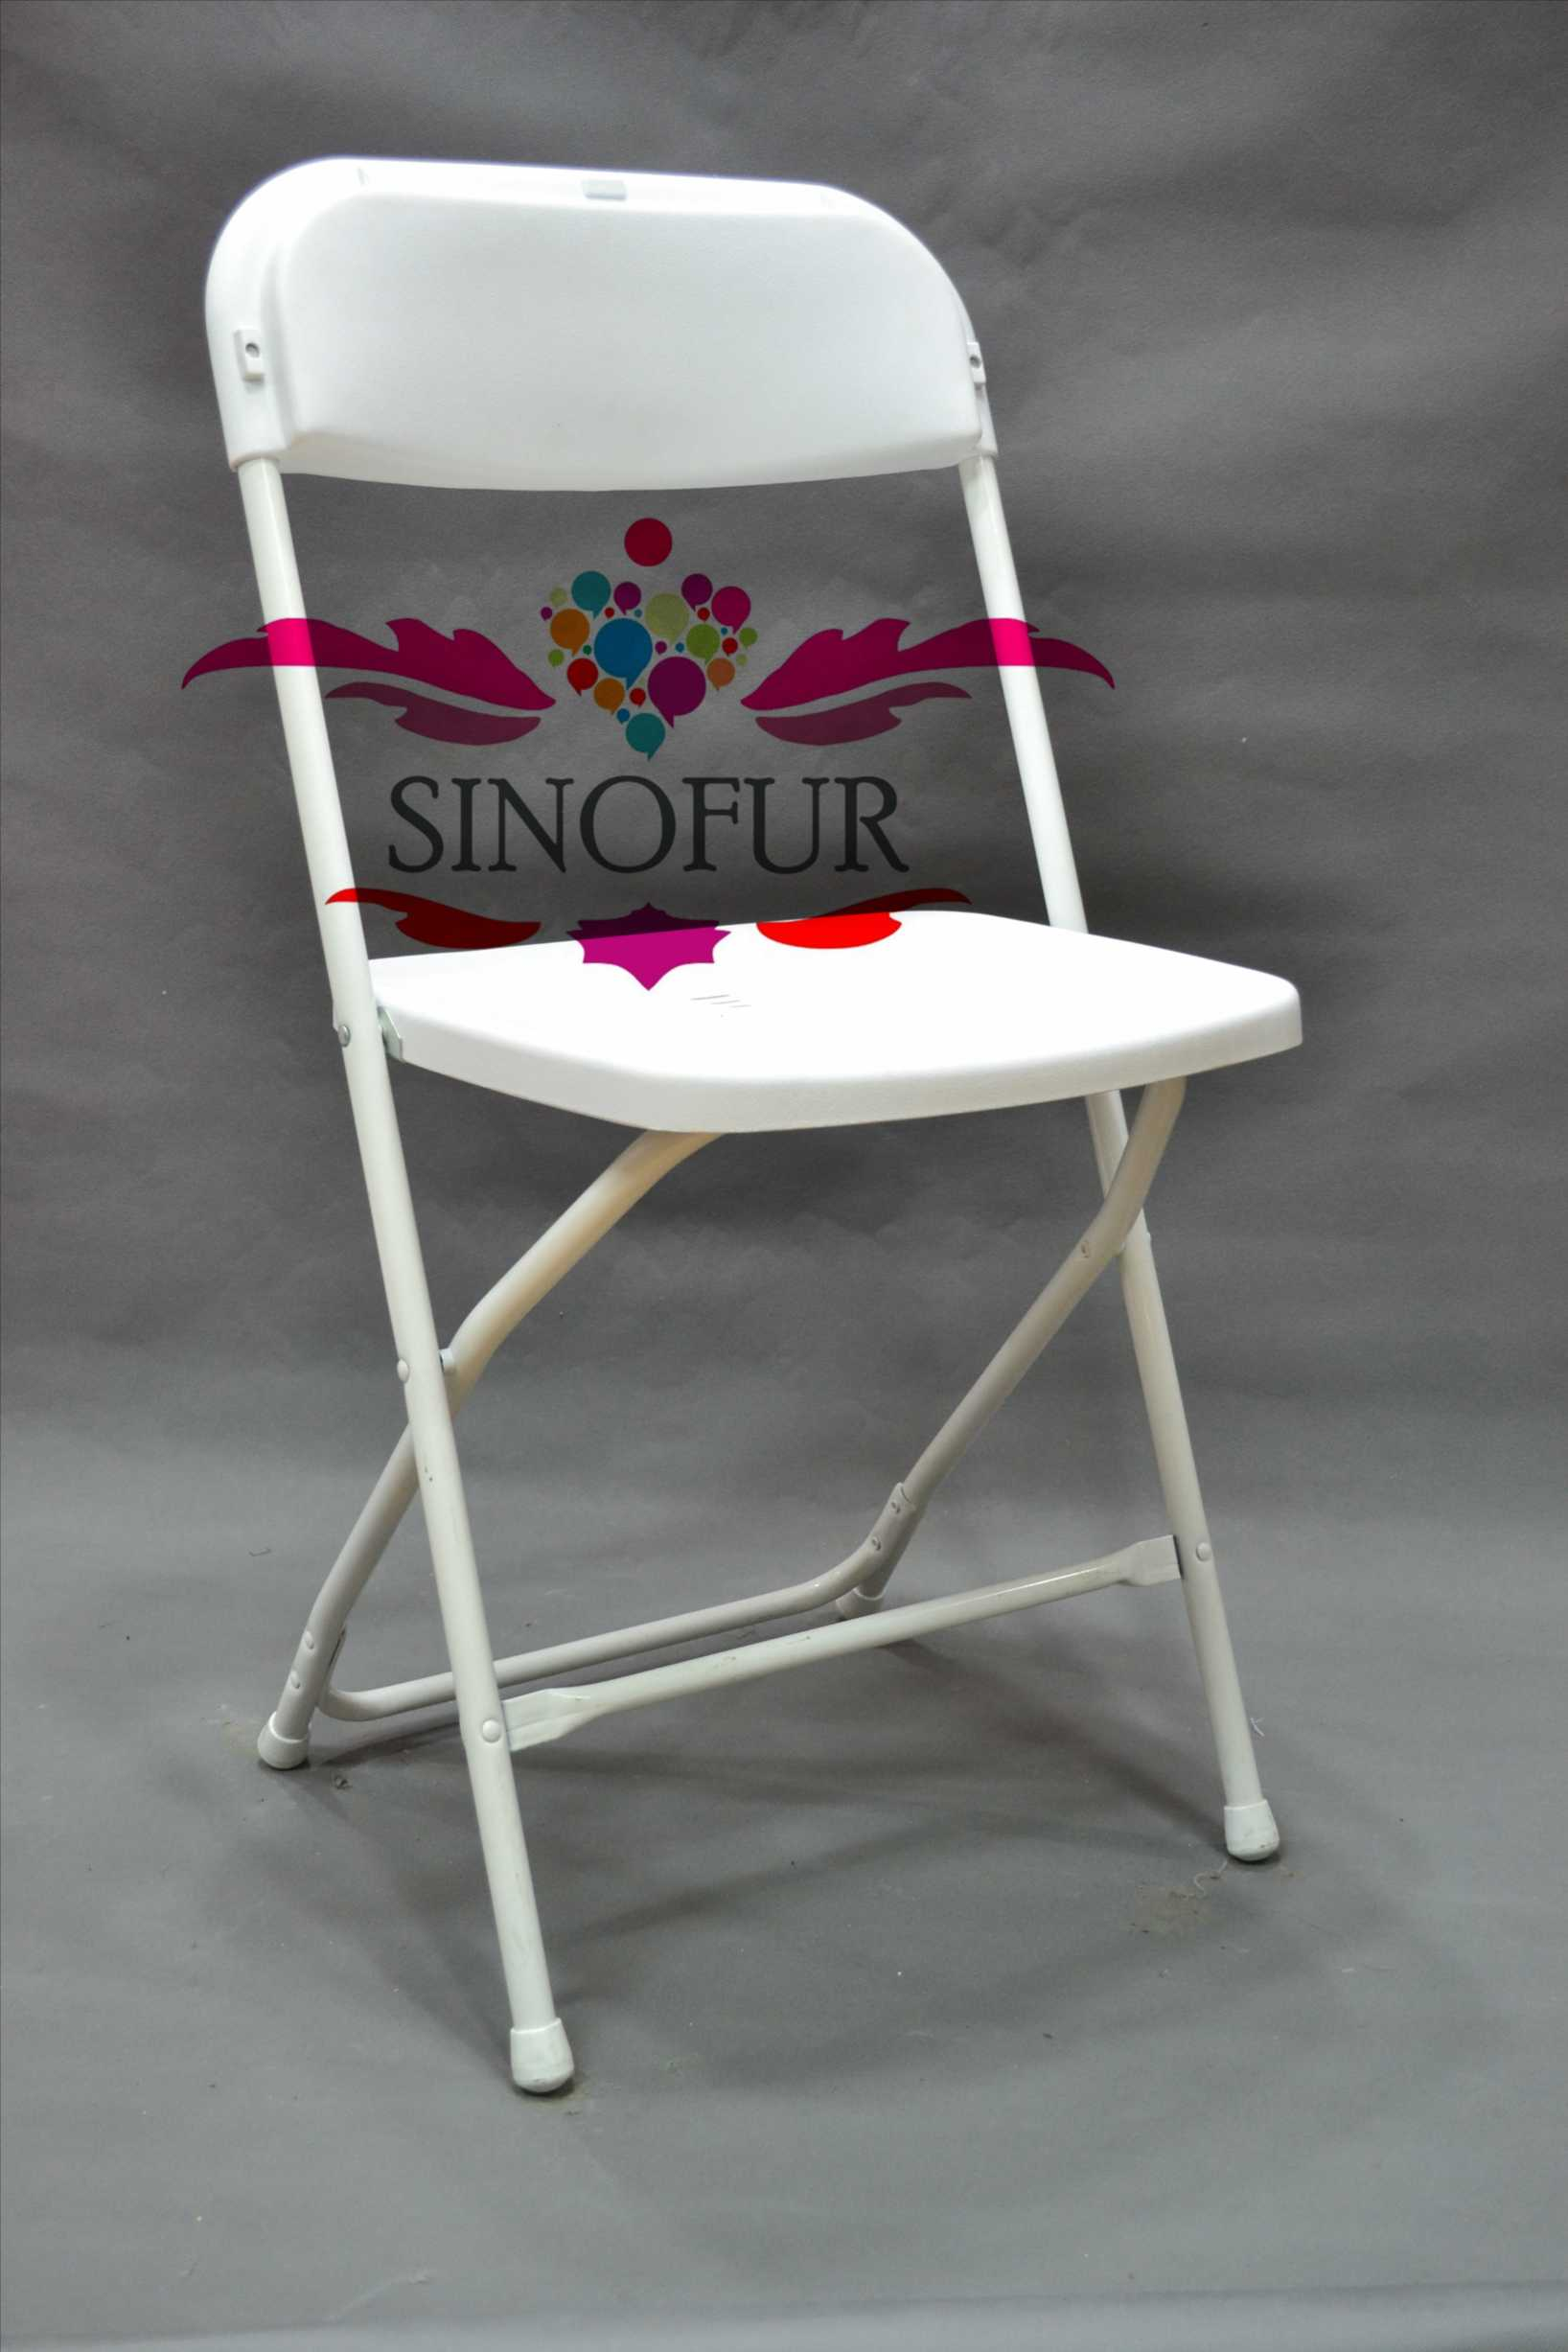 Wholesaler white chairs for sale white chairs for sale for White garden rocks for sale